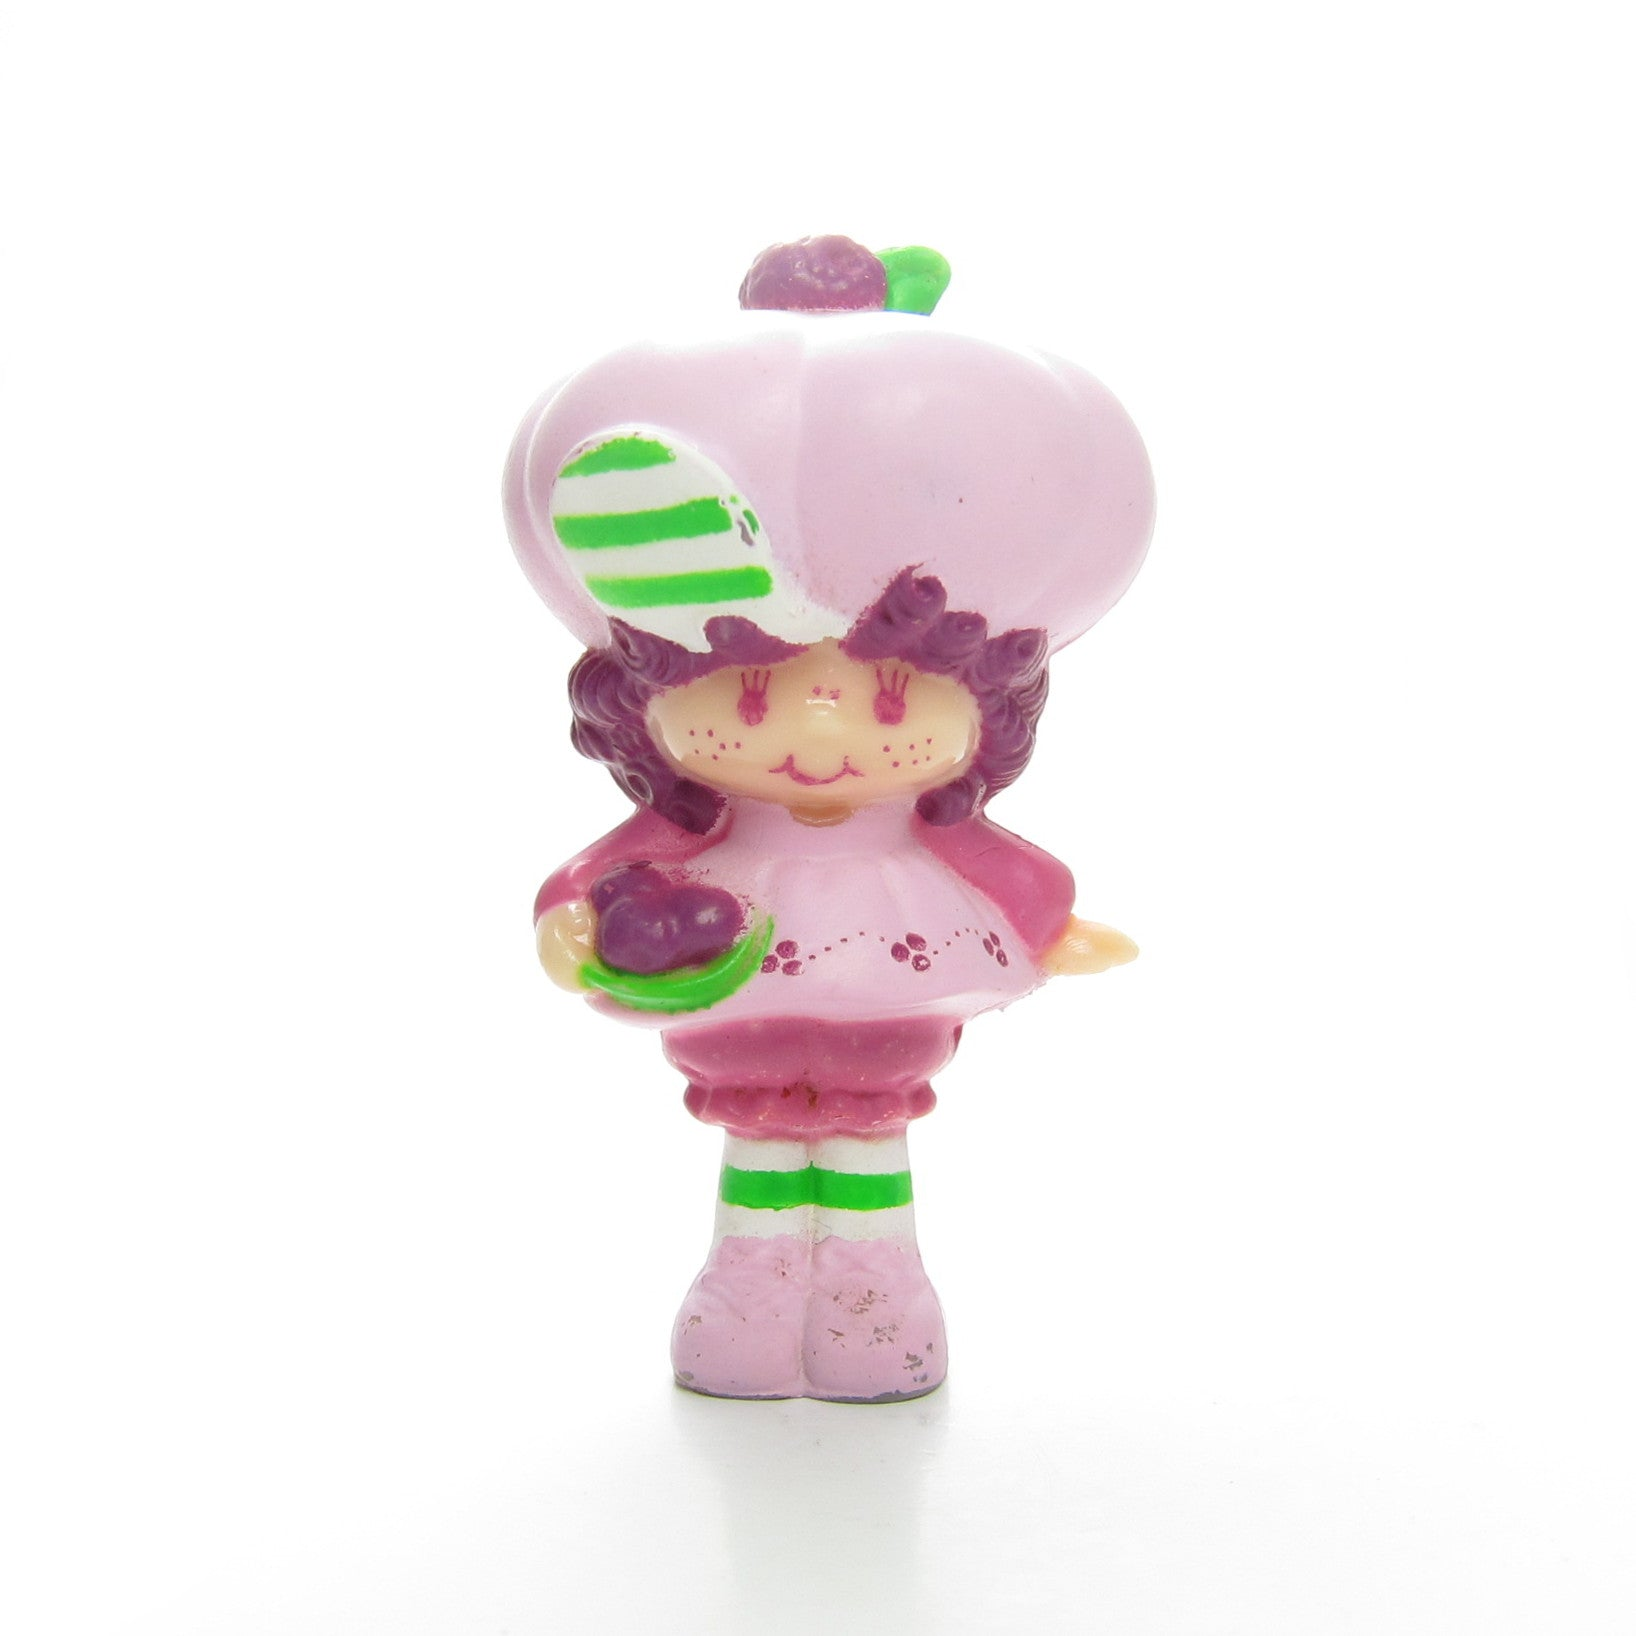 Raspberry Tart with a bowl of berries miniature figurine